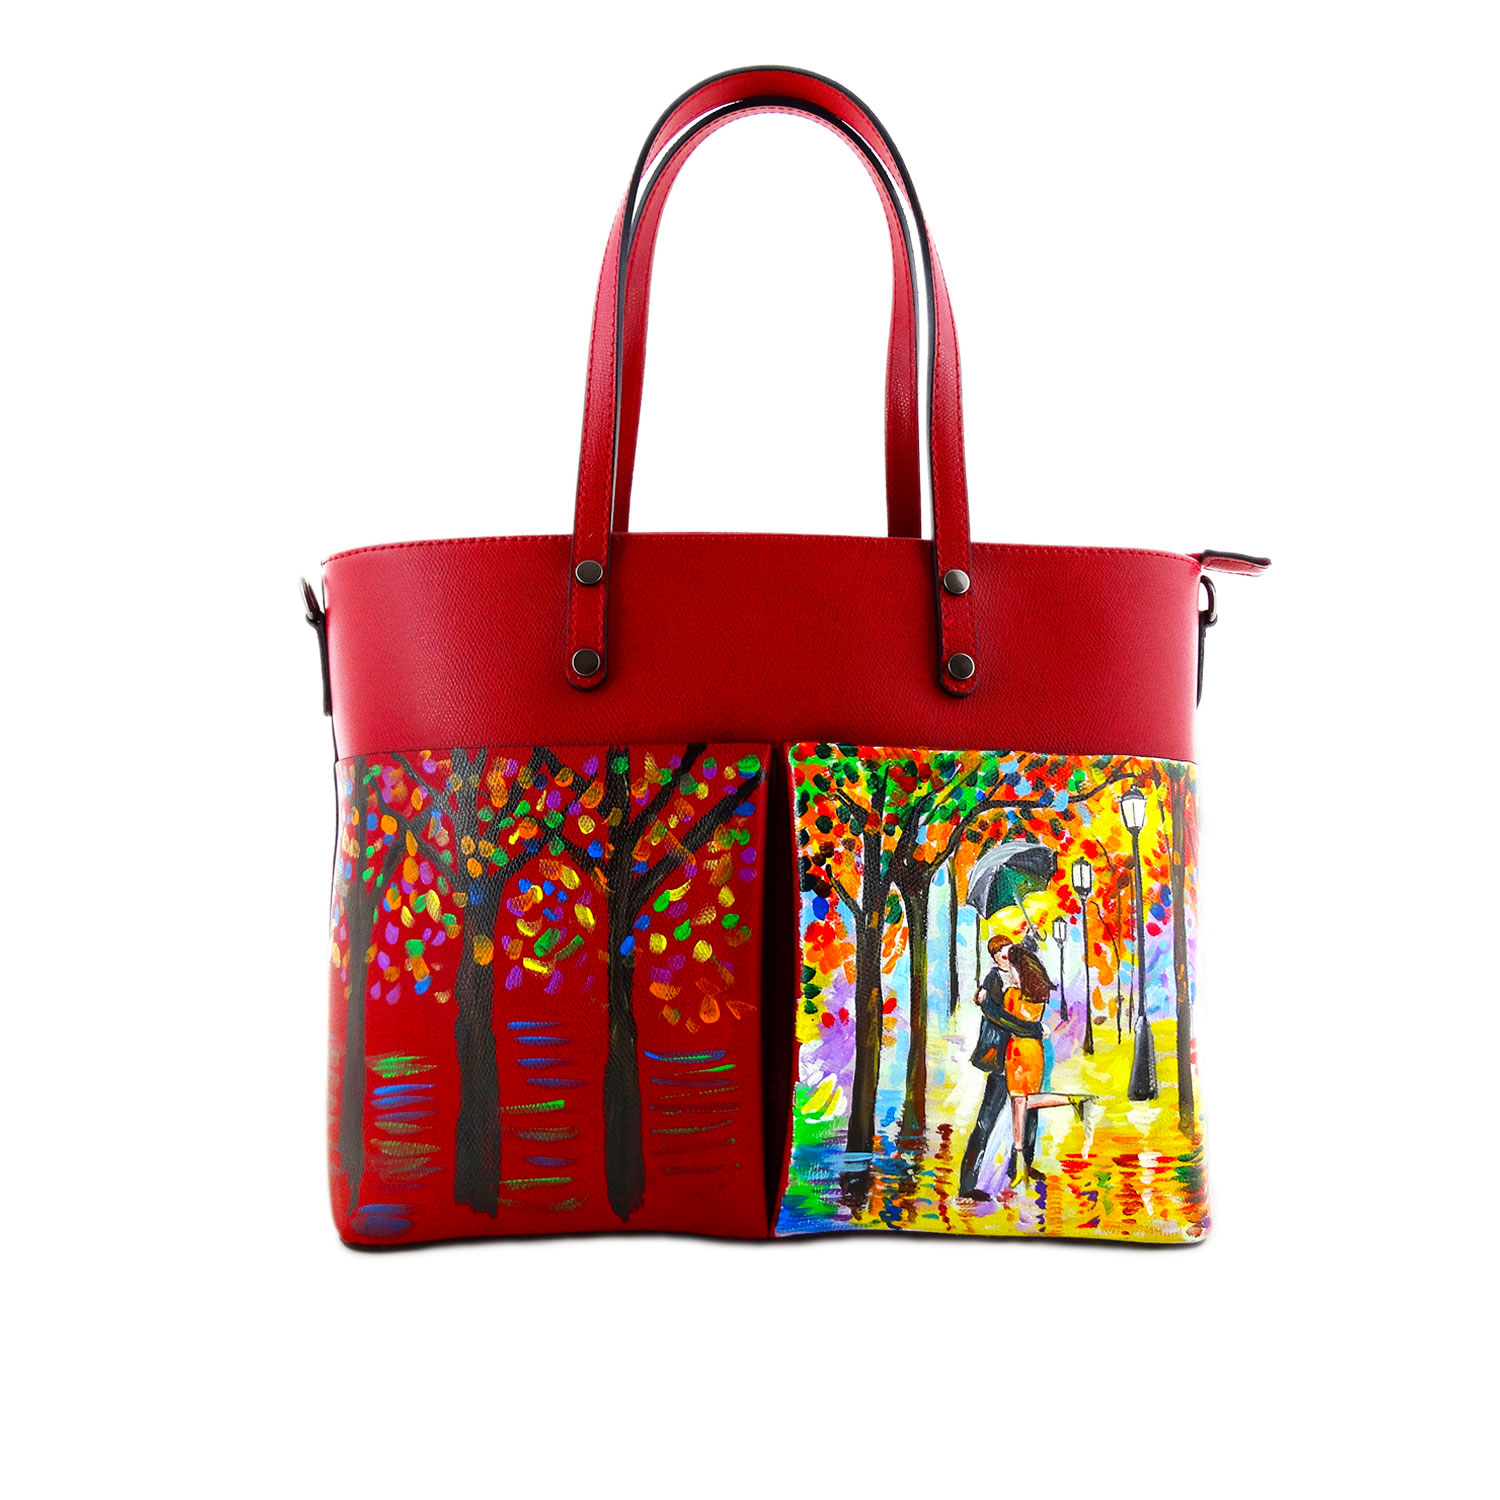 Hand painted bag - Tribute to lovers by Leonid Afremov